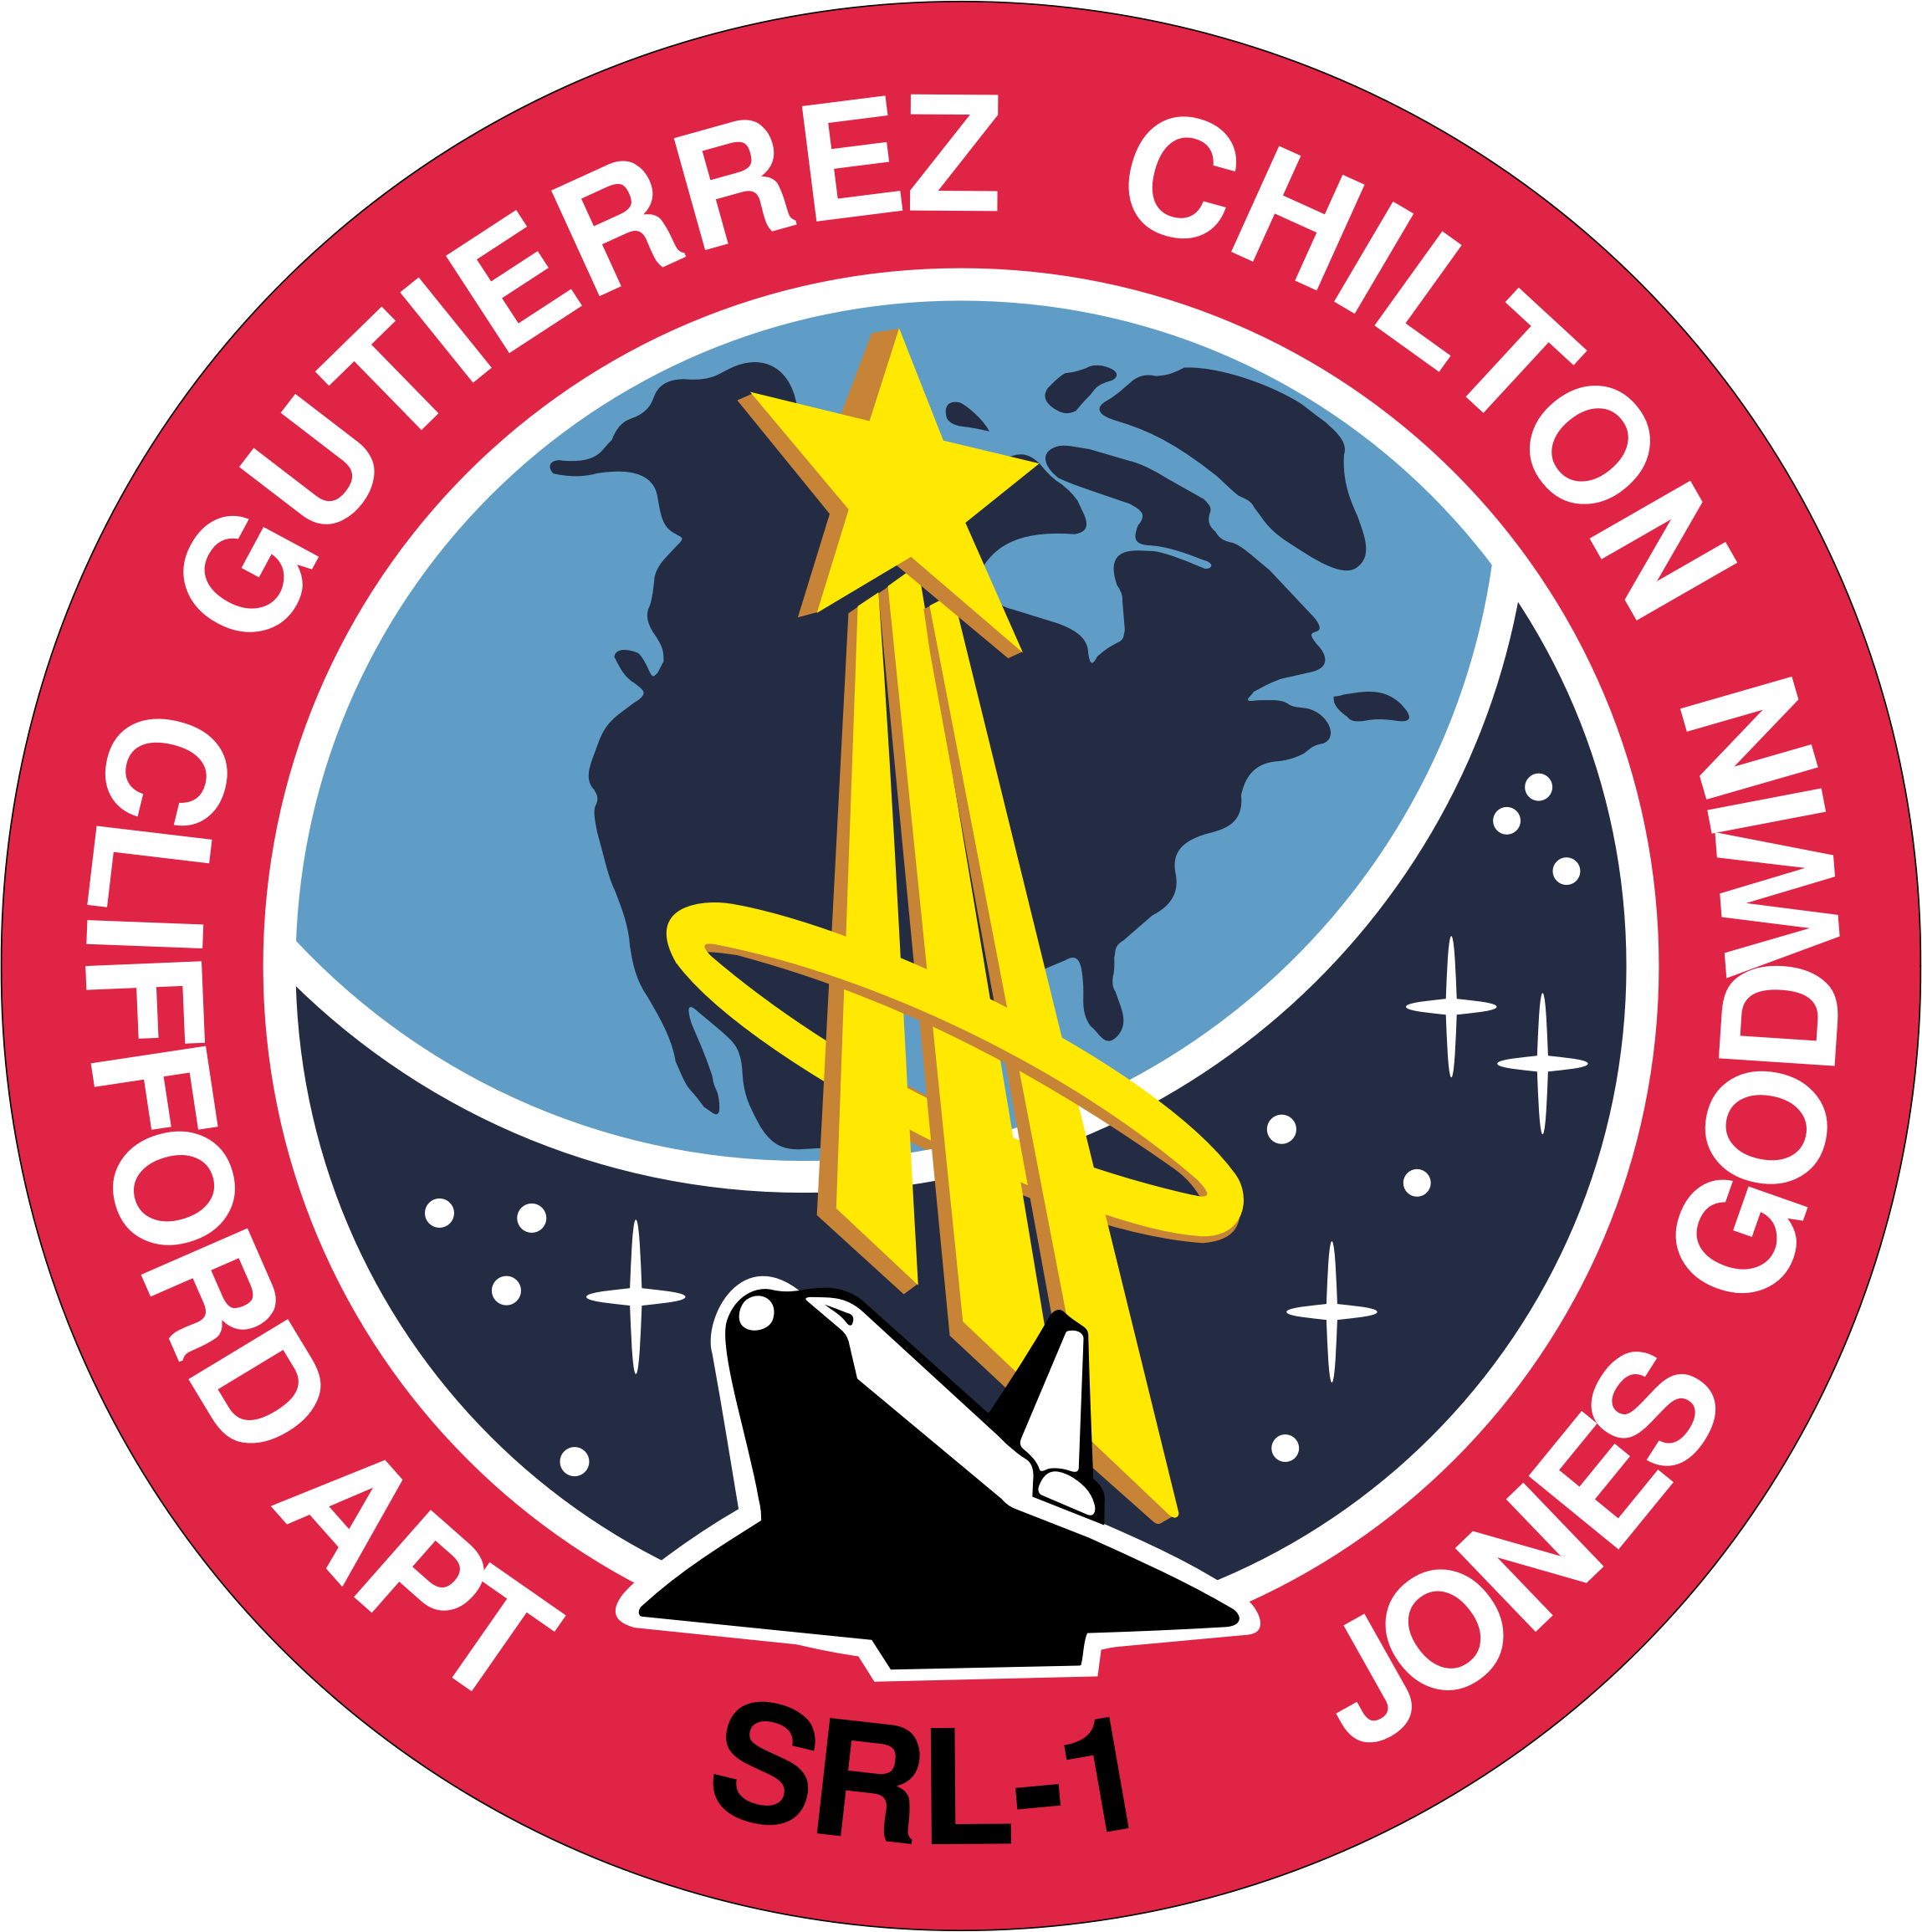 STS-59 Mission Insignia by NASA